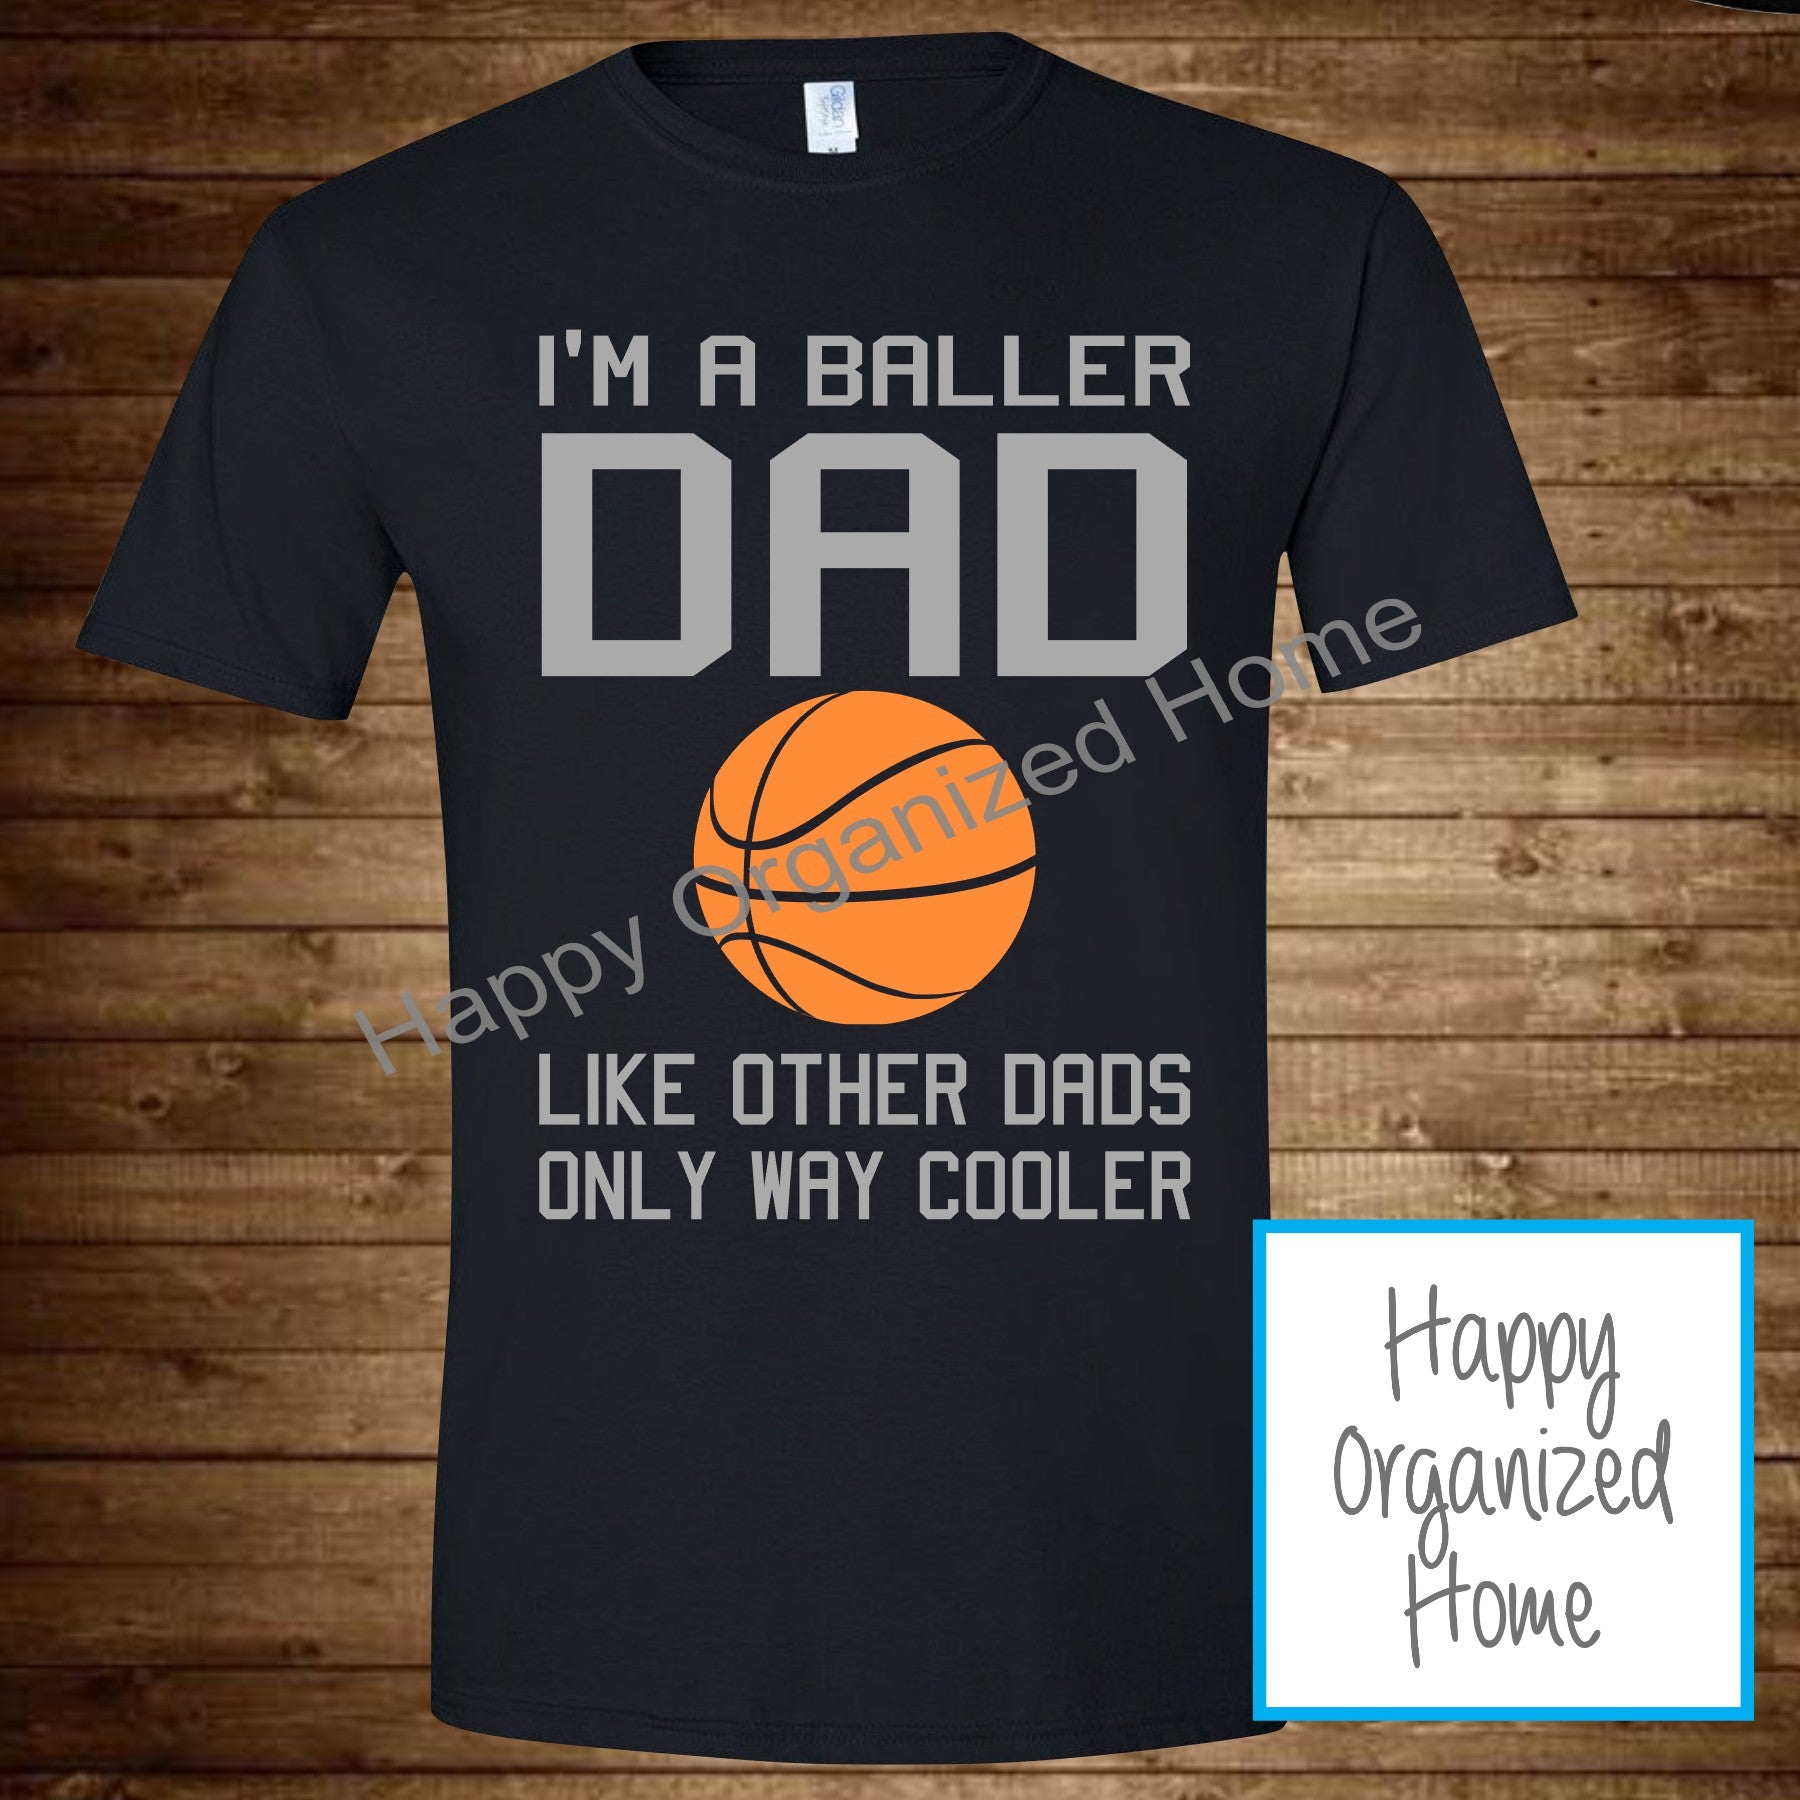 I'm a Baller Dad - Like other Dads only way cooler